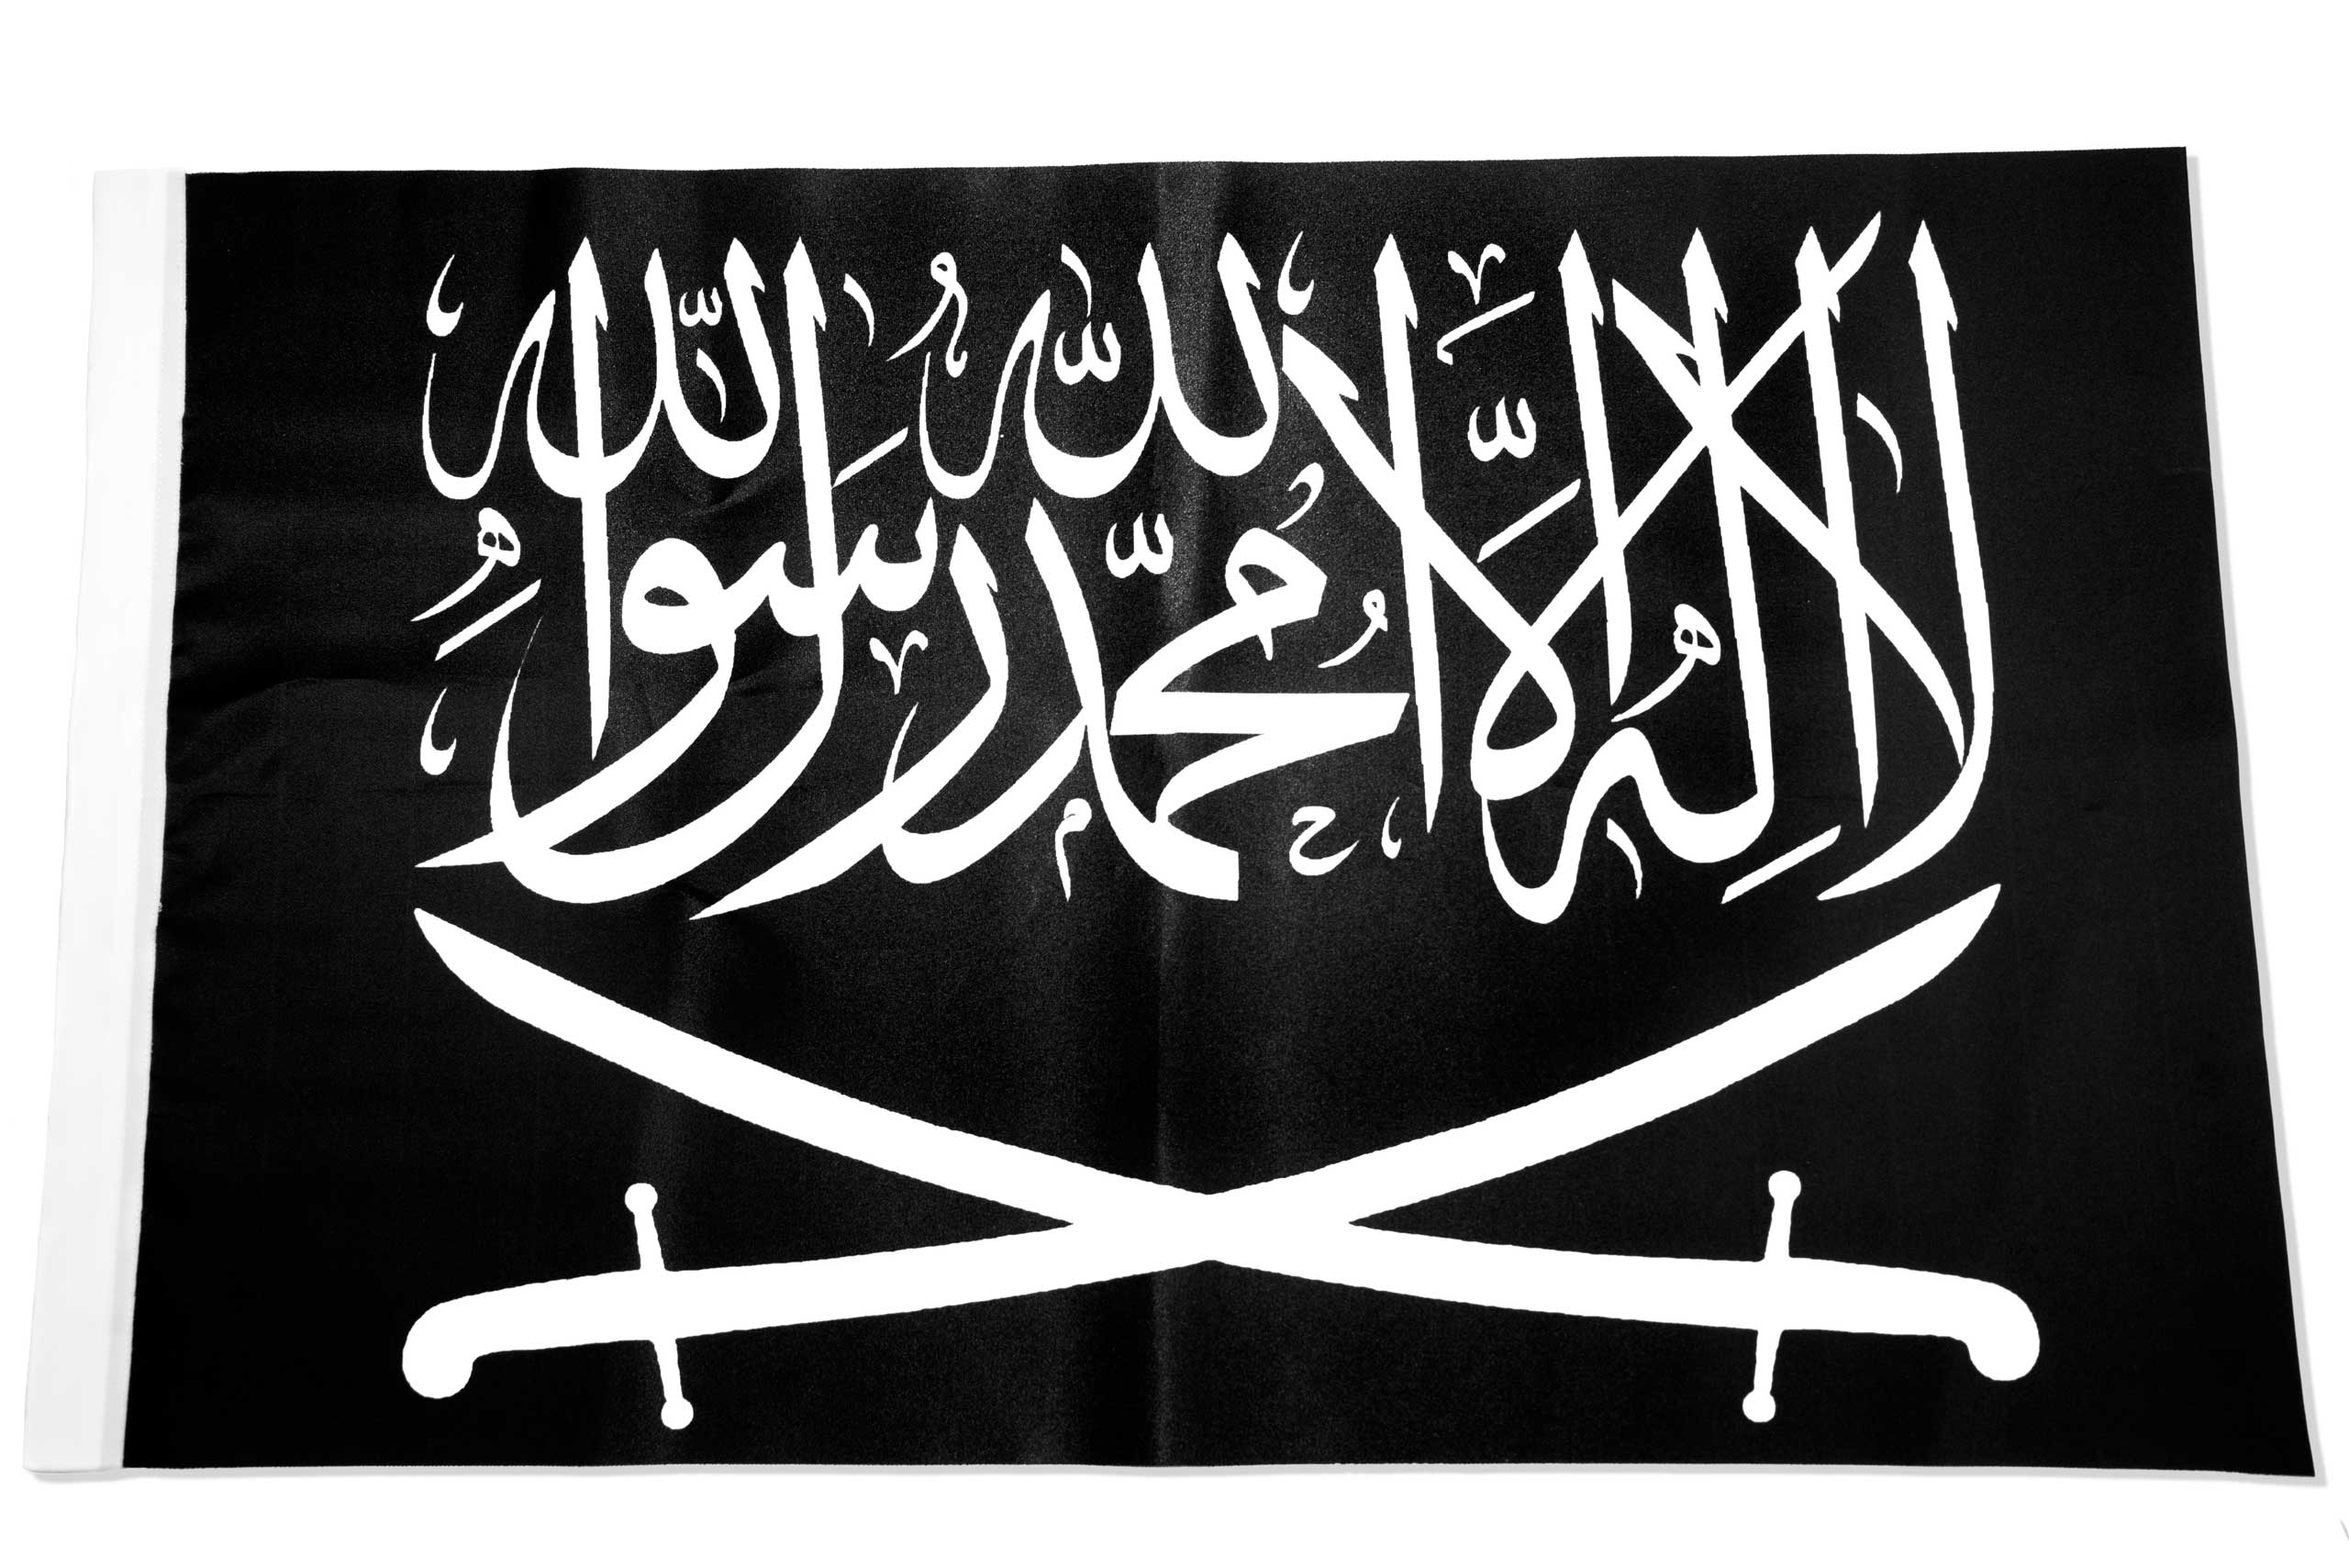 The black flag associated with Jihad or Al Raya - it has been a symbol of religious fighting and battles since the founding of Islam in the seventh century. Prophet Muhammad and many of his companions are said to have carried a similar flag into battle. This item was found in a Islamic clothing and accessory shop in the Bagcilar district of Istanbul, Turkey.